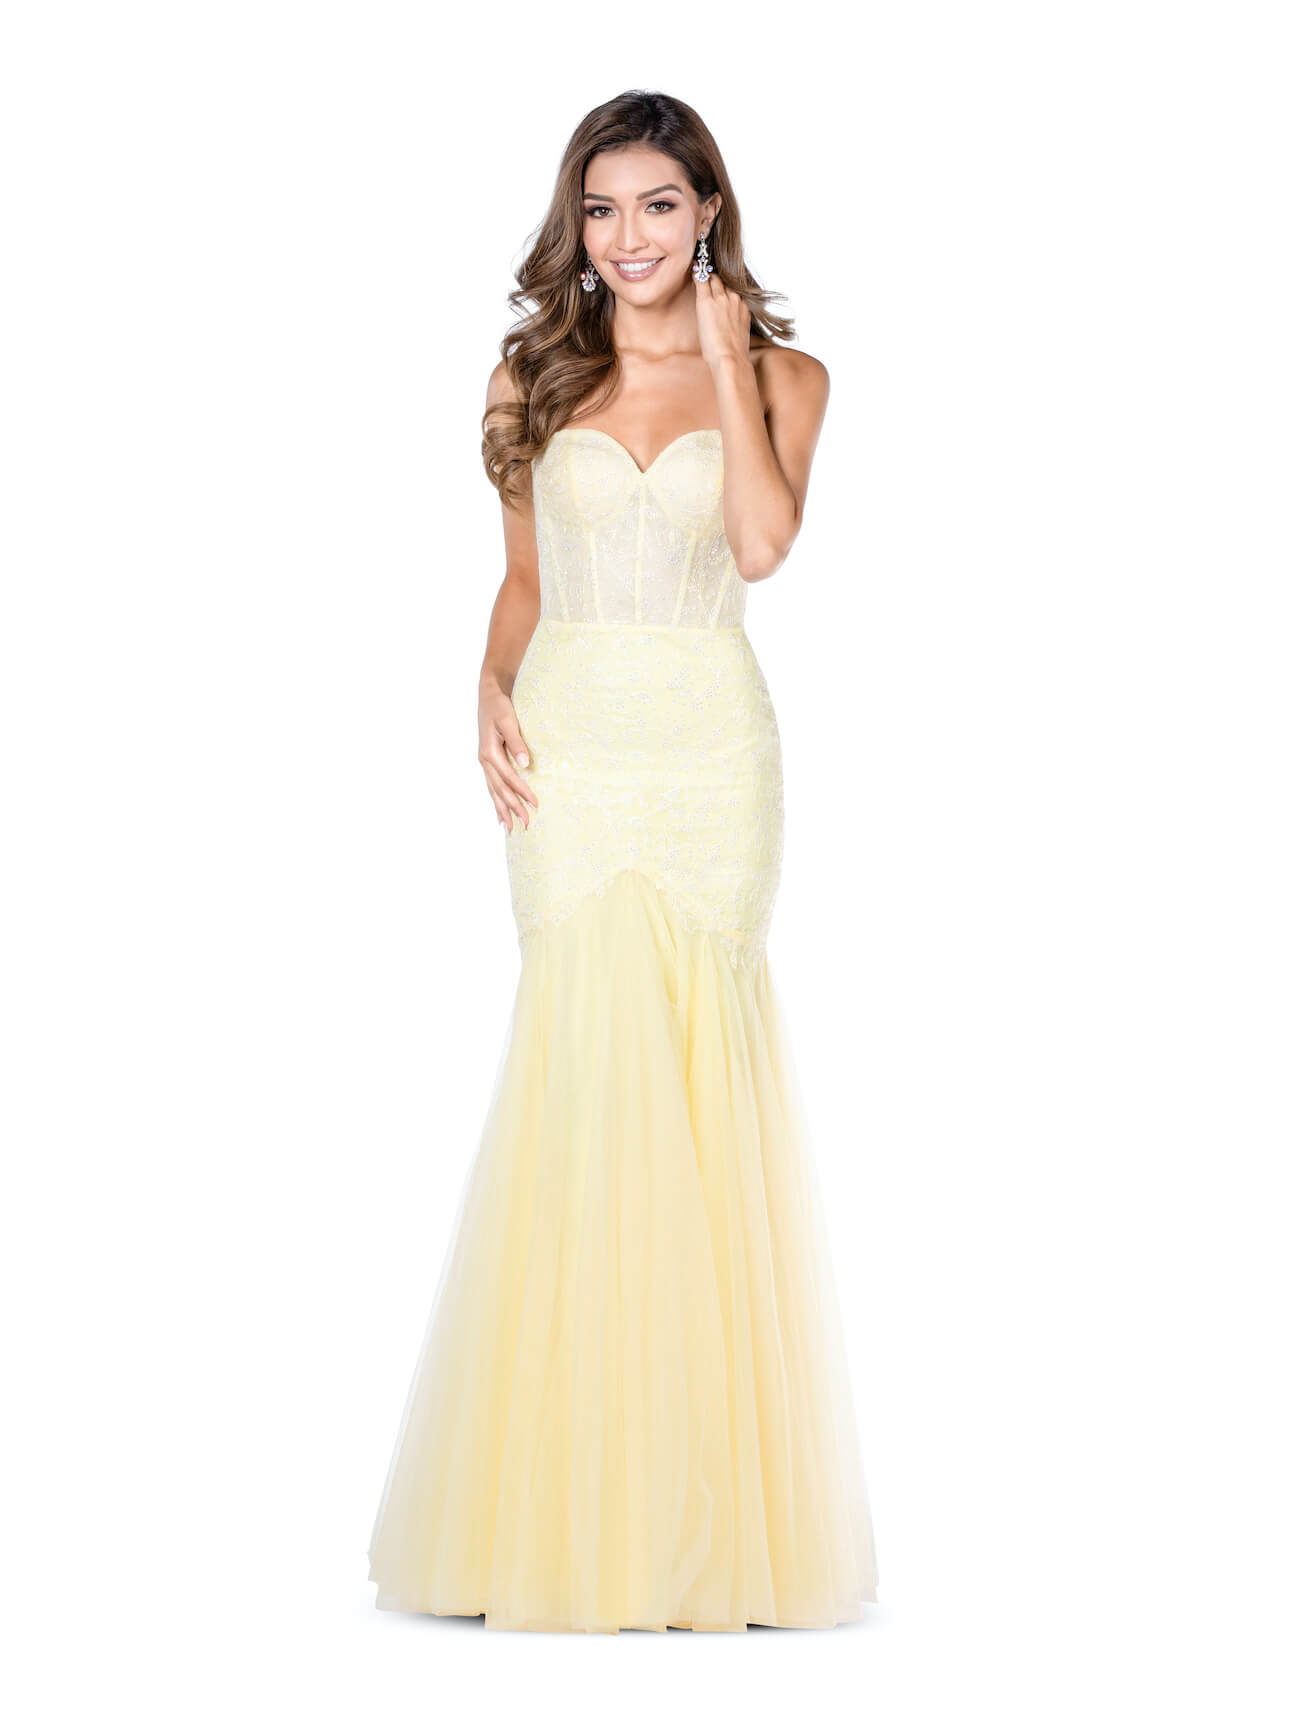 Queenly size 2 Vienna Yellow Mermaid evening gown/formal dress